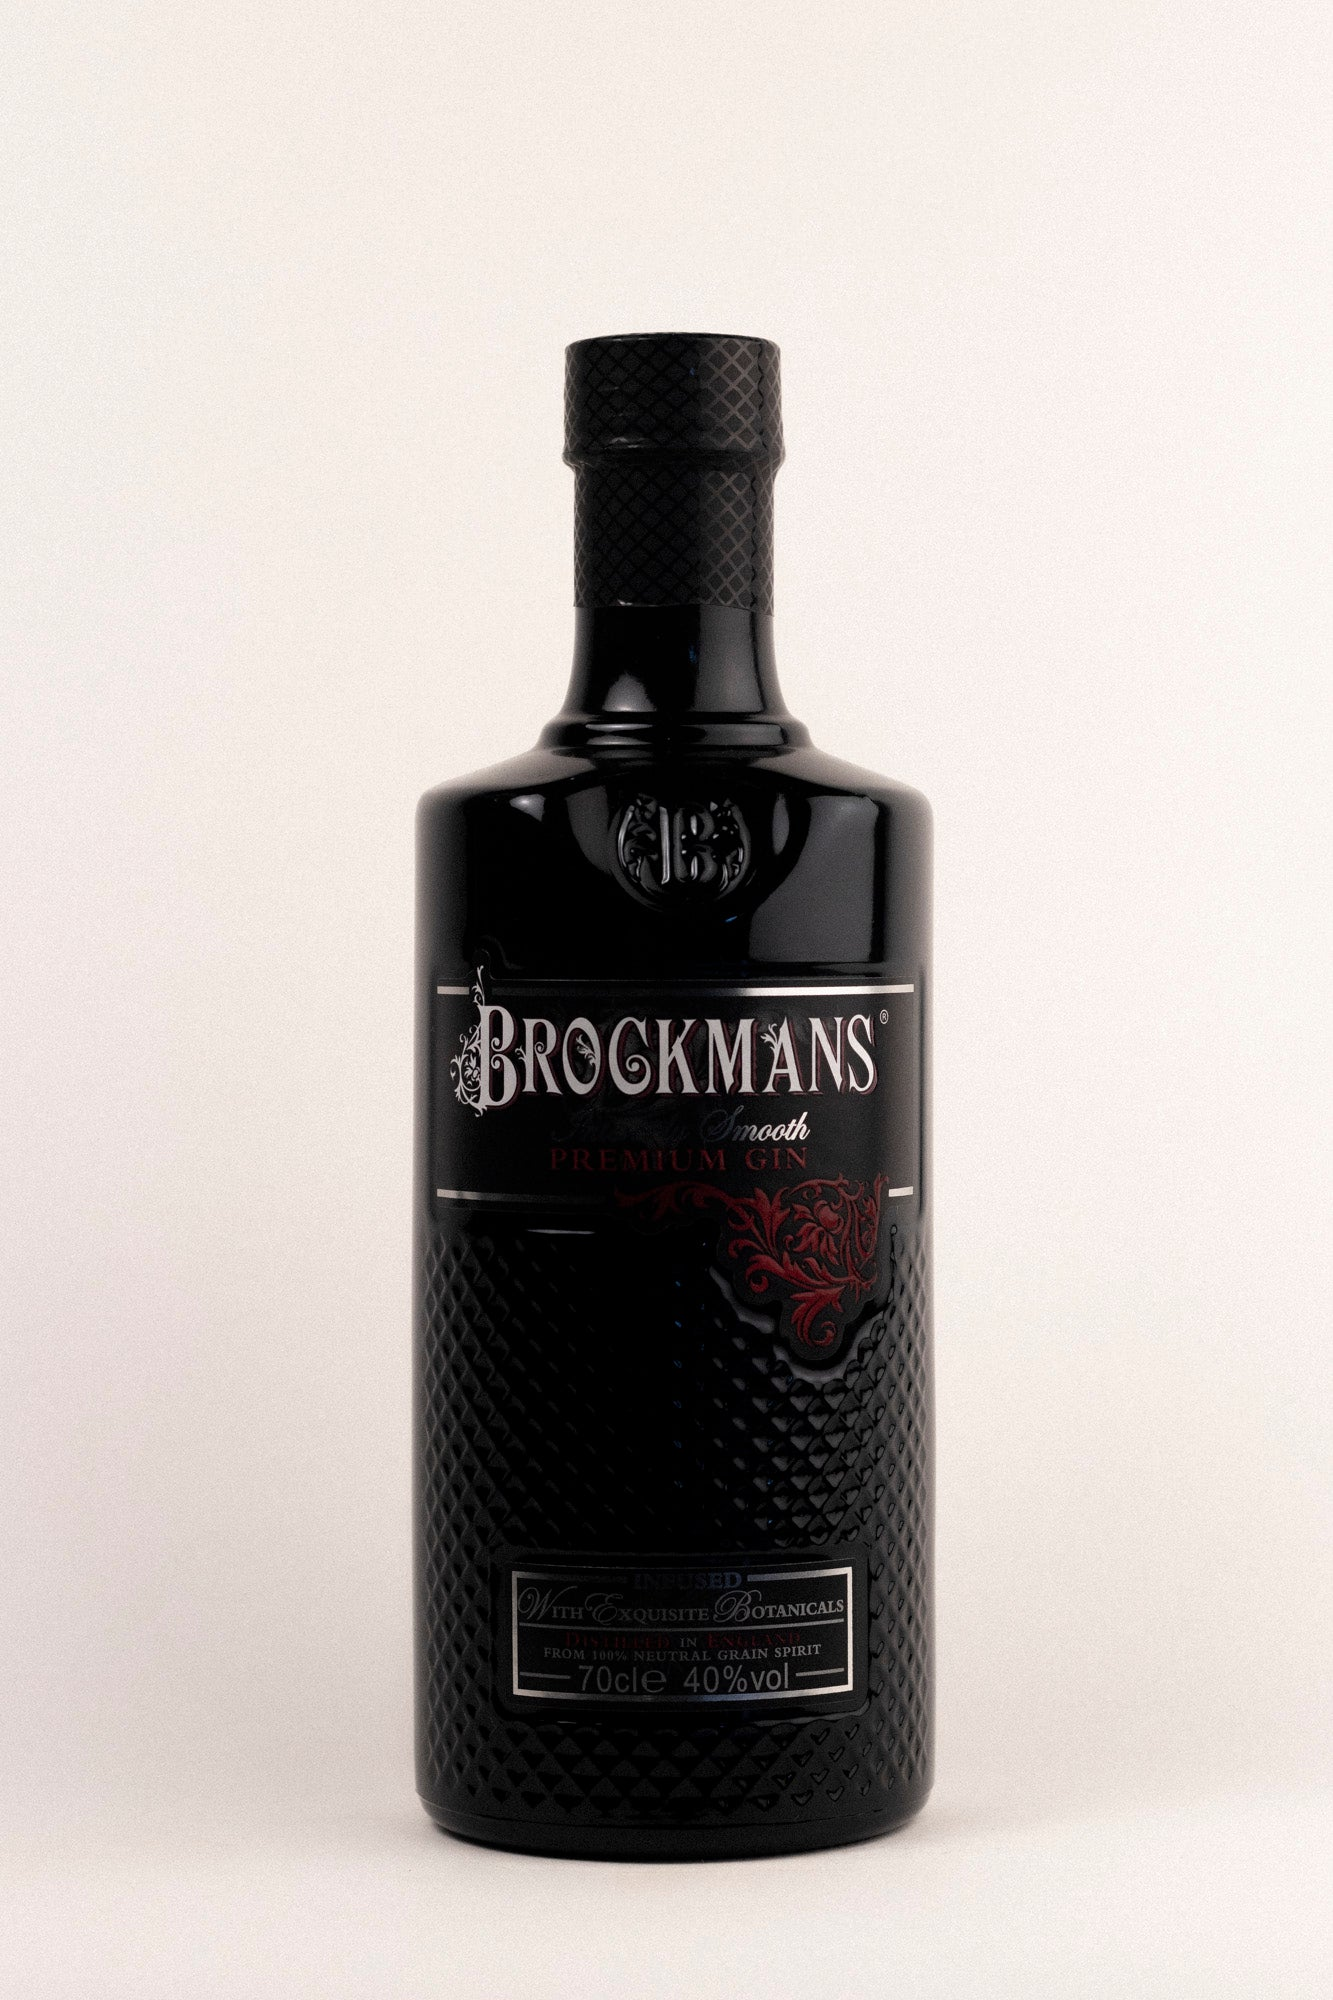 Brockmans Premium Gin, 700ml